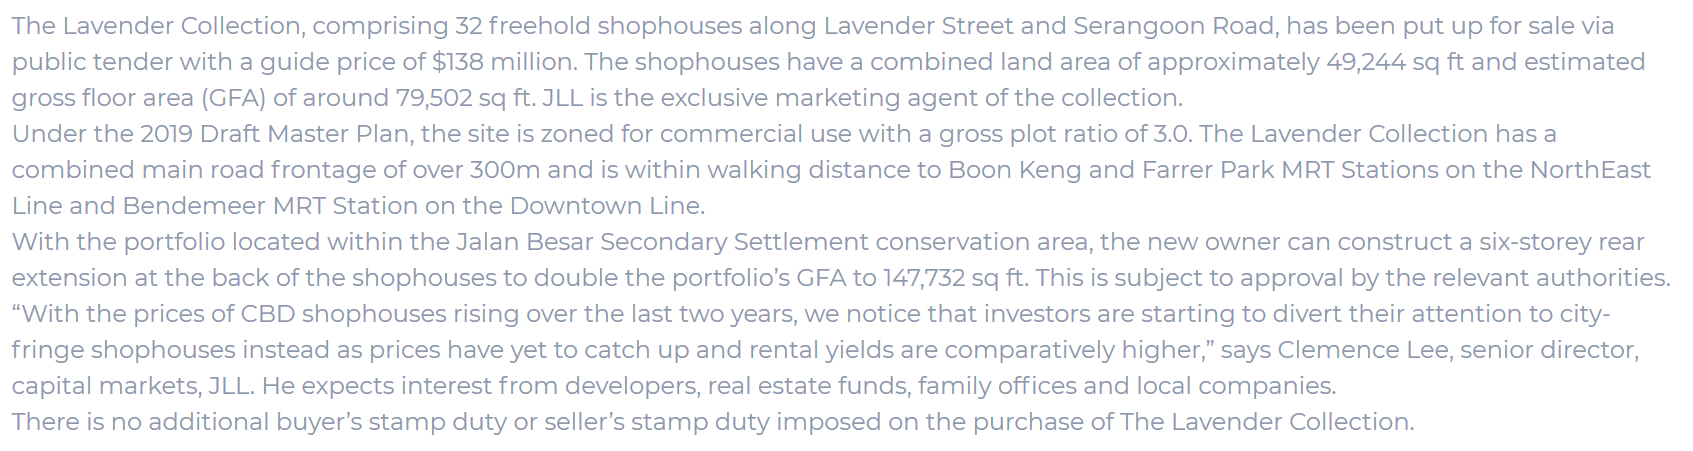 florence-residences-lavendar-collection-overview-text-singapore